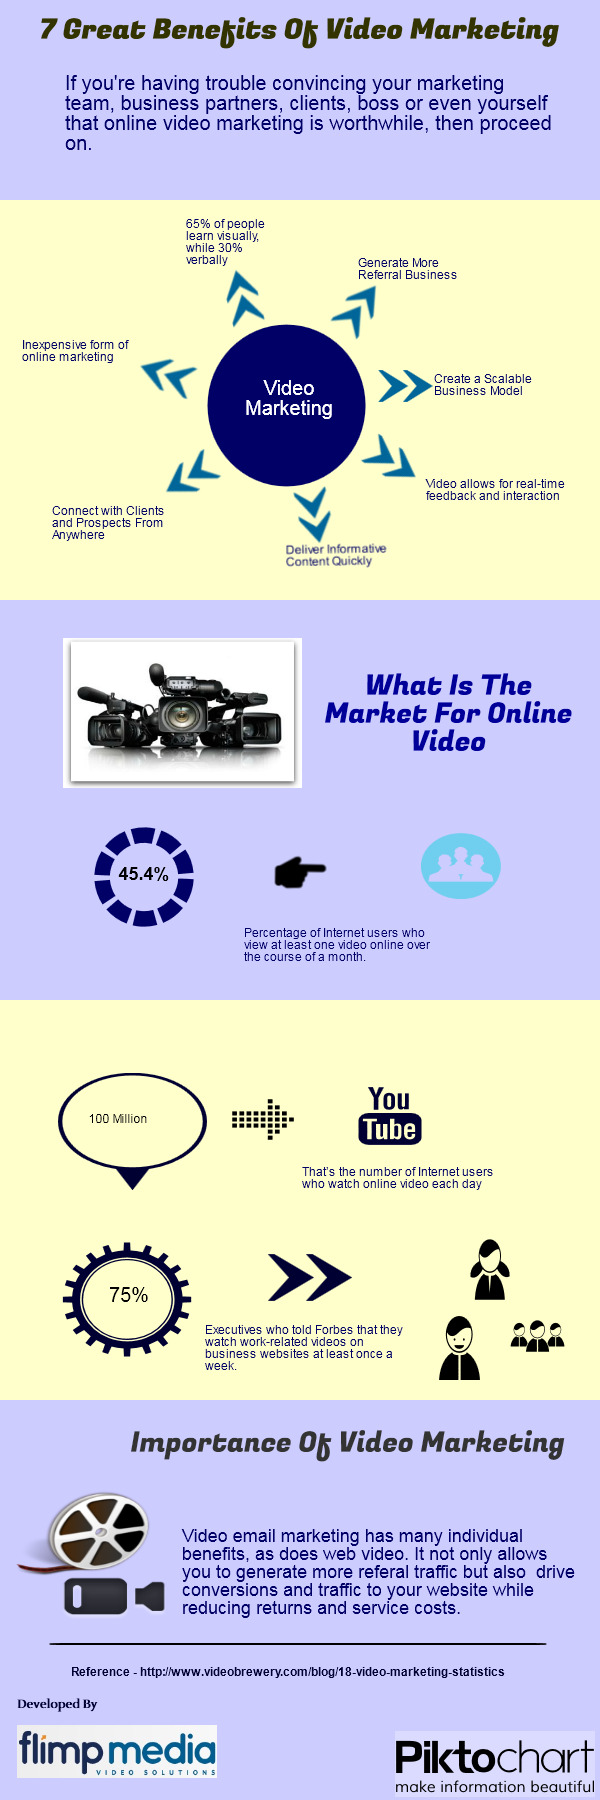 Flimp Media -7 Benefits of Video Marketing Infographic